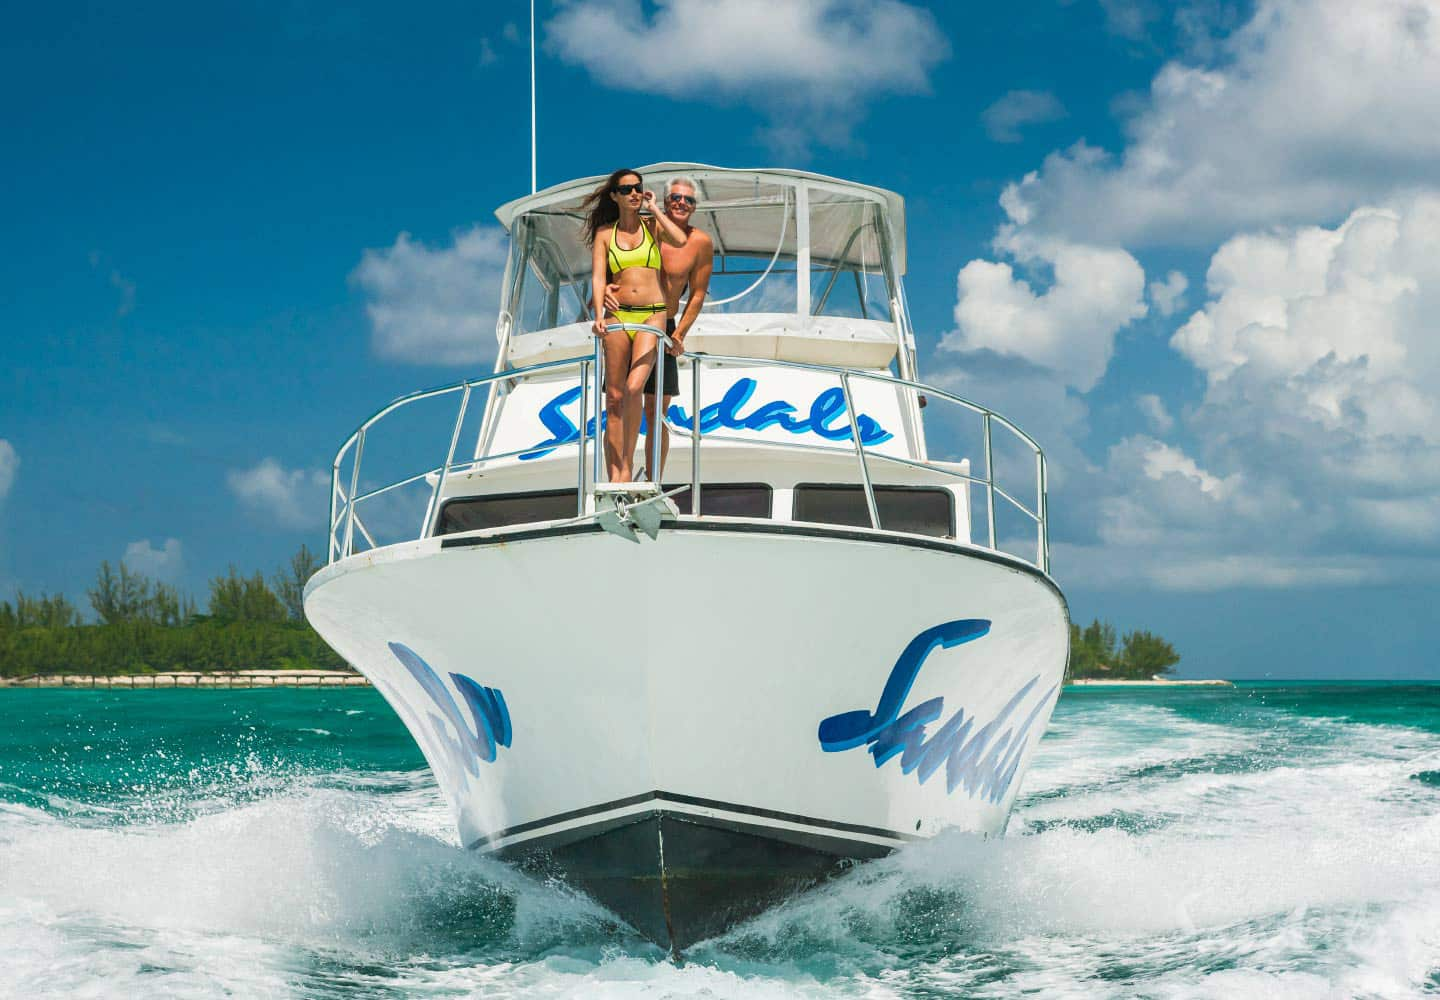 a couple on top of a yacht in the ocean at the Sandals Emerald Bay Golf, Spa & Tennis resort at the Great Exuma, Bahamas luxury resorts, all inclusive adults only vacation packages